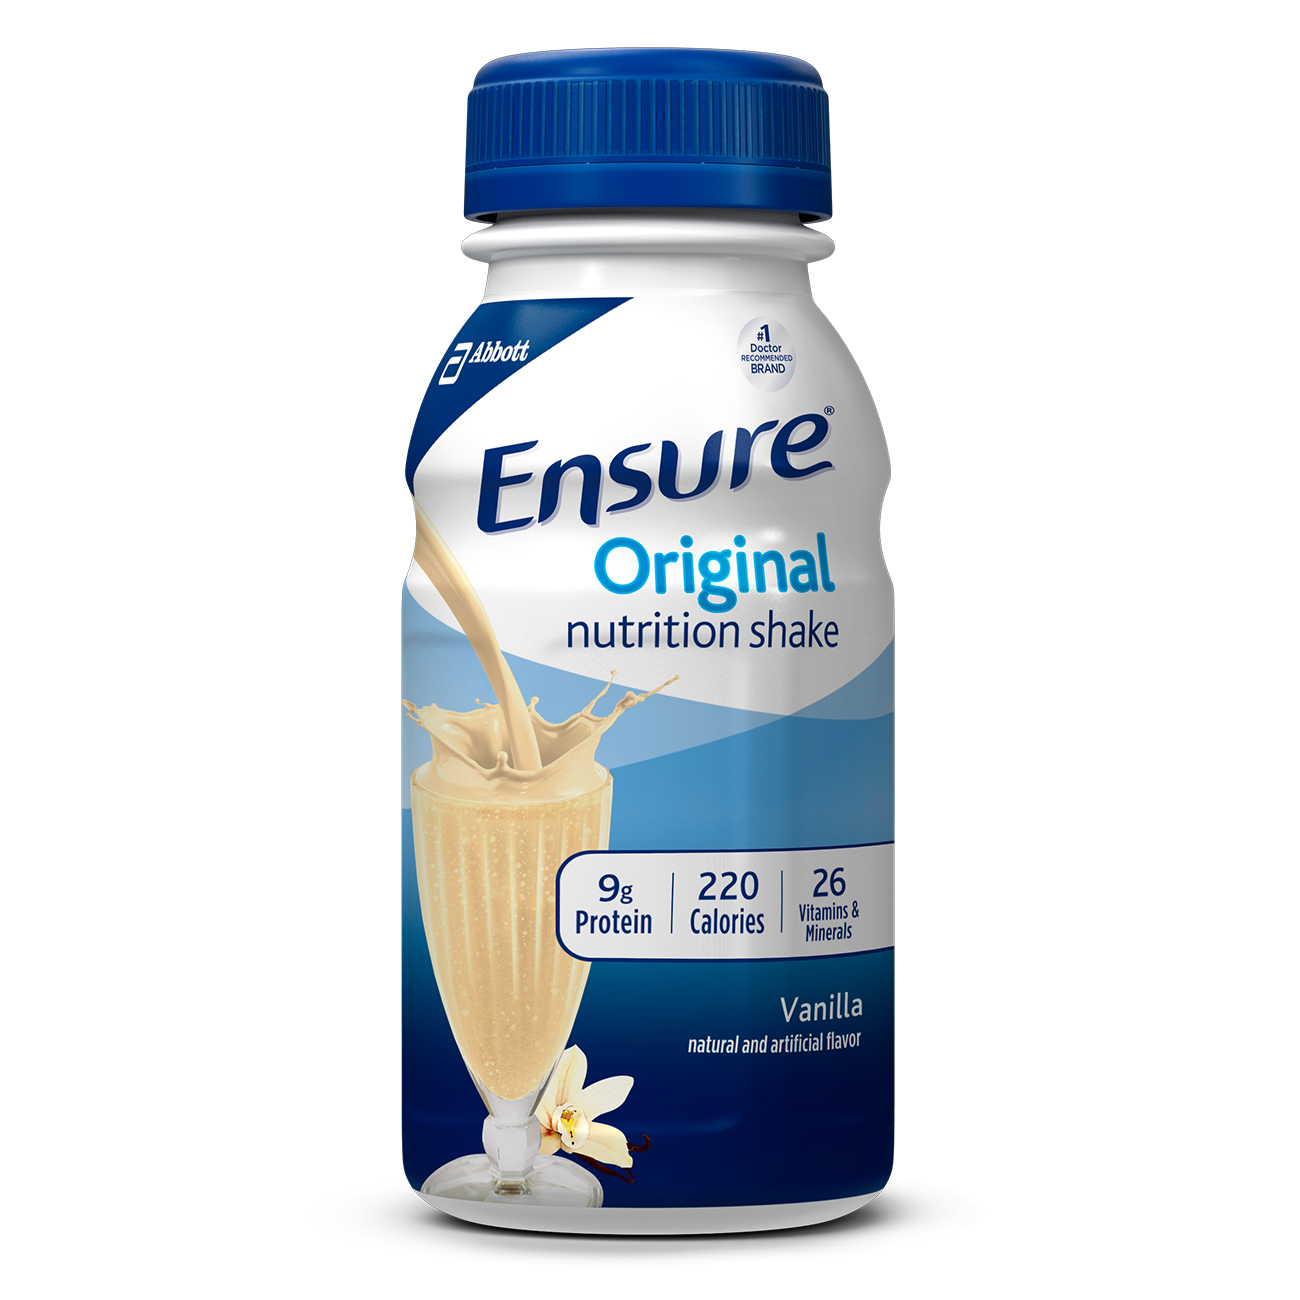 Ensure Original Nutrition Shake Vanilla with 9 grams of protein, Meal Replacement Shakes, 8 Fl oz Bottles, 16 Ct